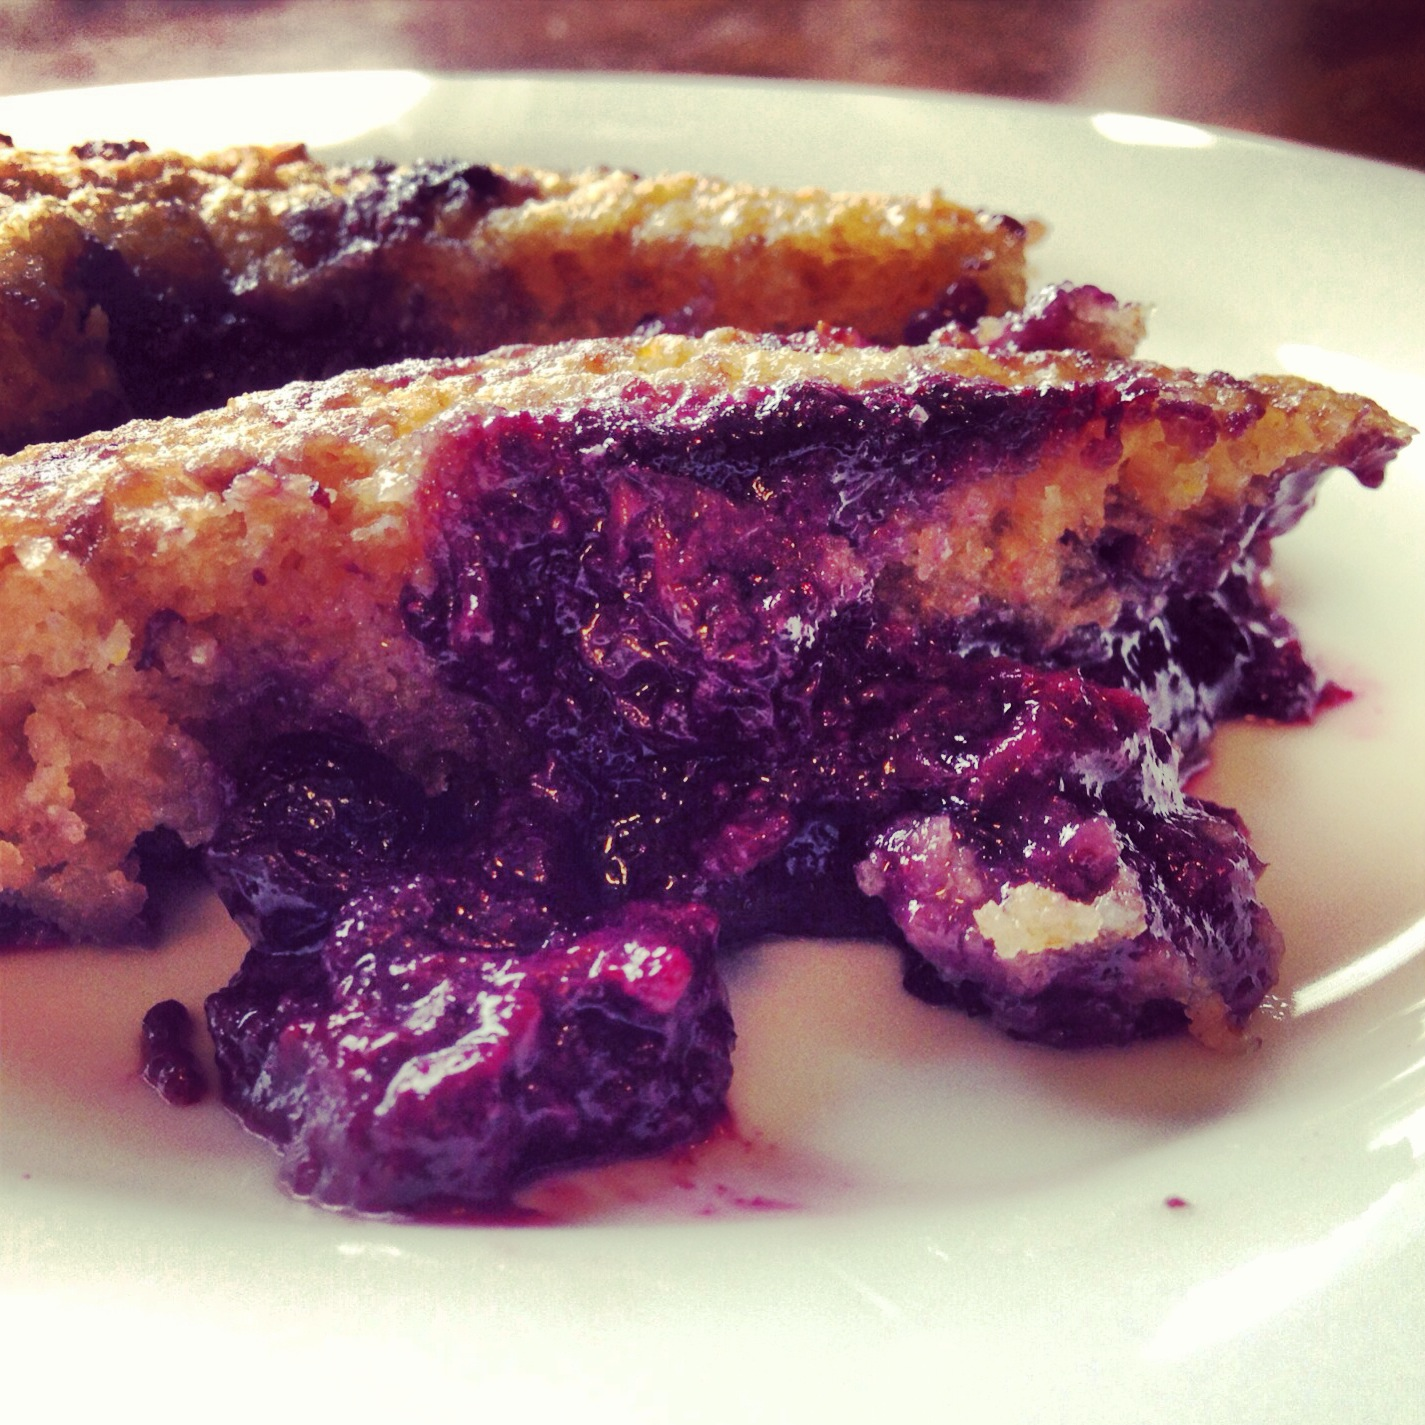 Blueberry Cobbler with Flax and Chia